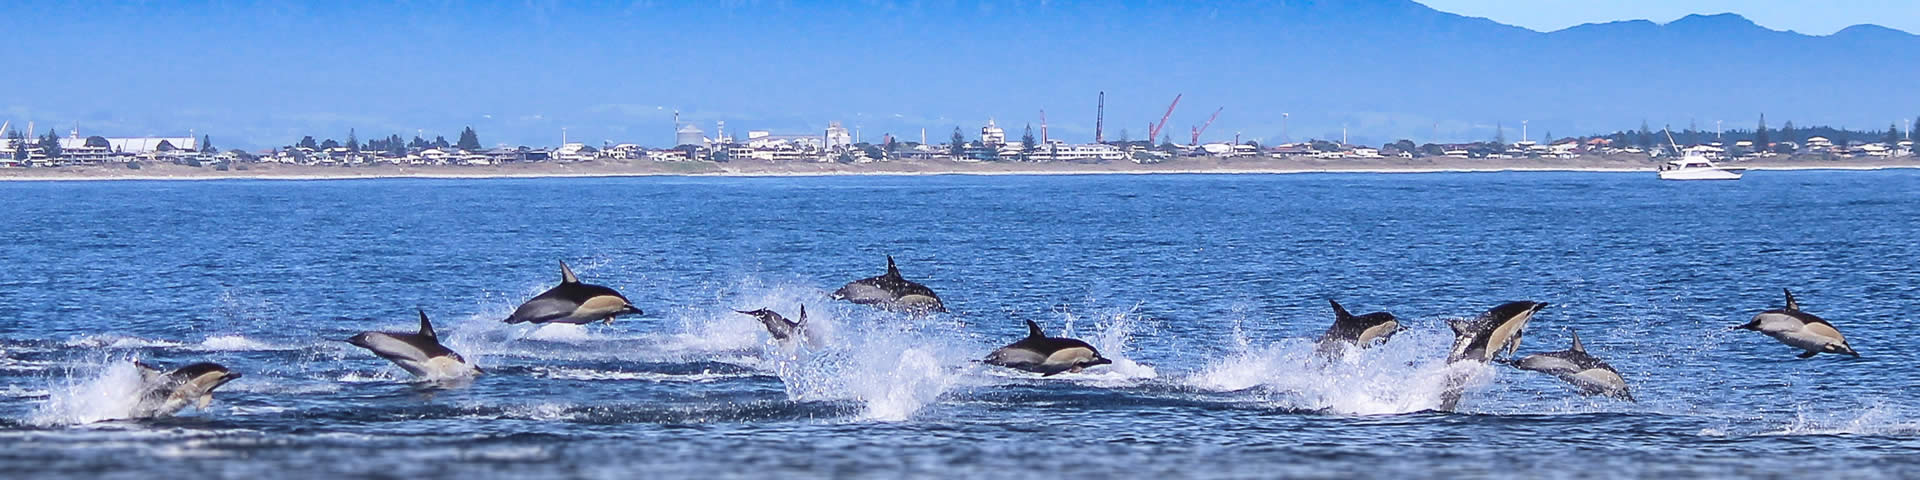 Your chance to watch dolphins in the wild